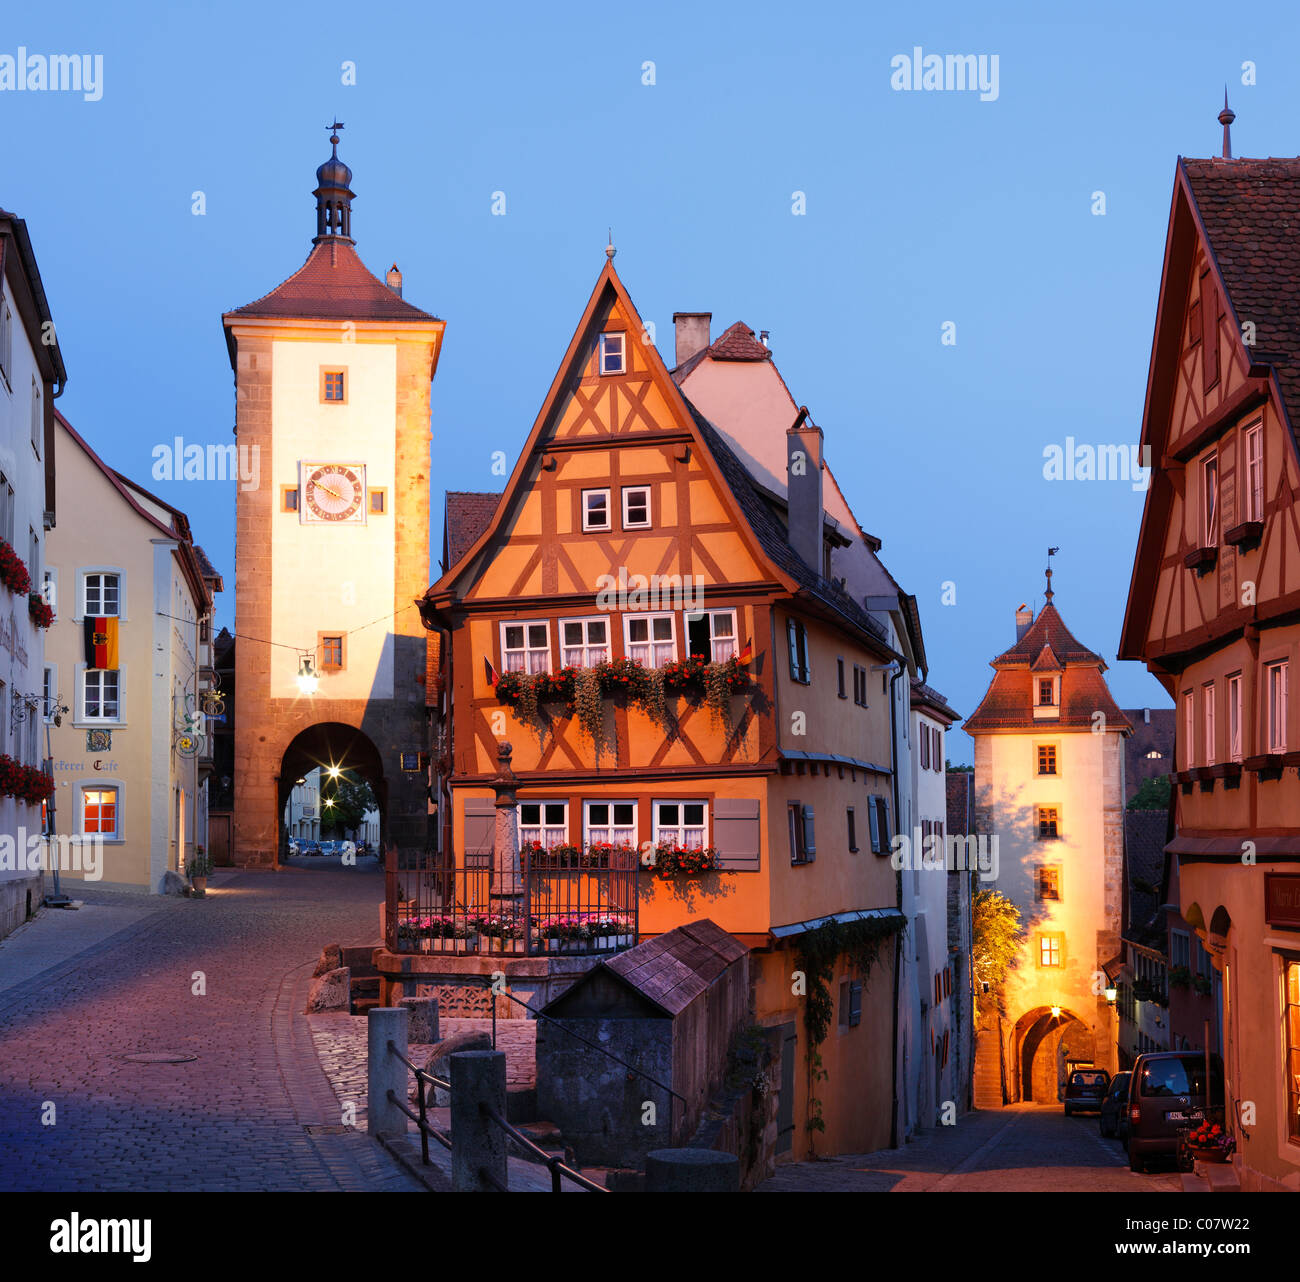 Ploenlein road junction and Siebersturm tower, Rothenburg ob der Tauber, Romantic Road, Middle Franconia, Franconia, - Stock Image